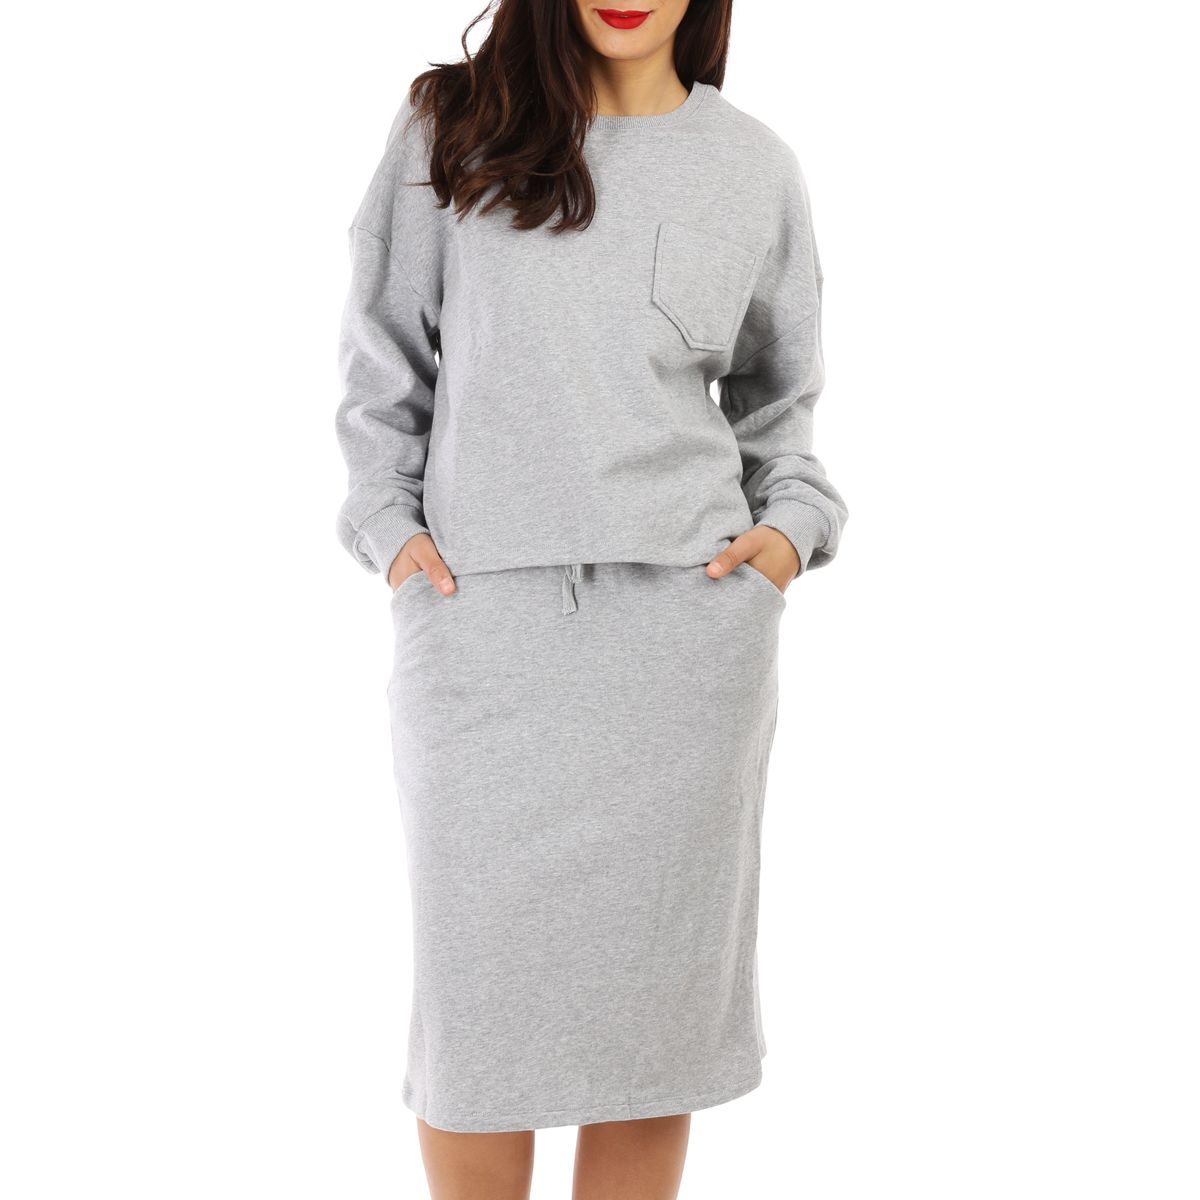 Ensemble jupe sweat gris